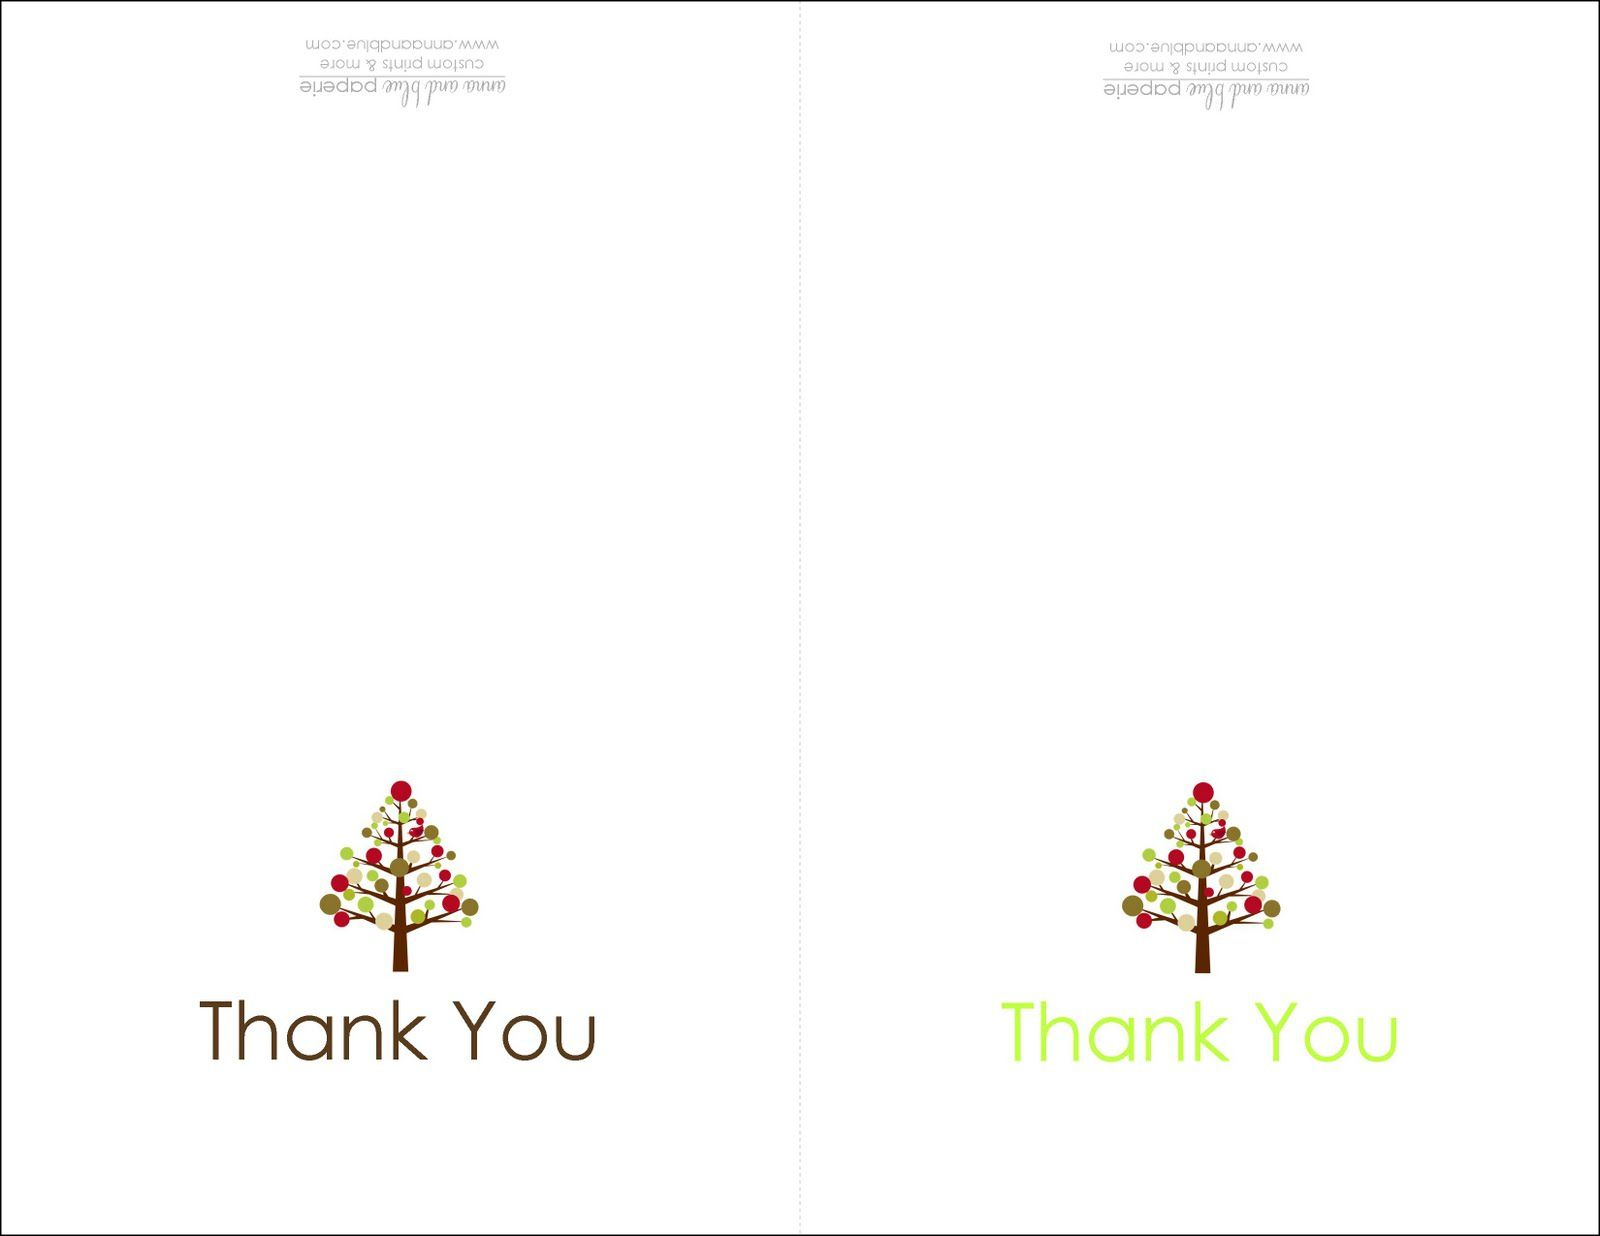 Thank You Cards Printable | Printable - Christmas Thank You Cards Printable Free